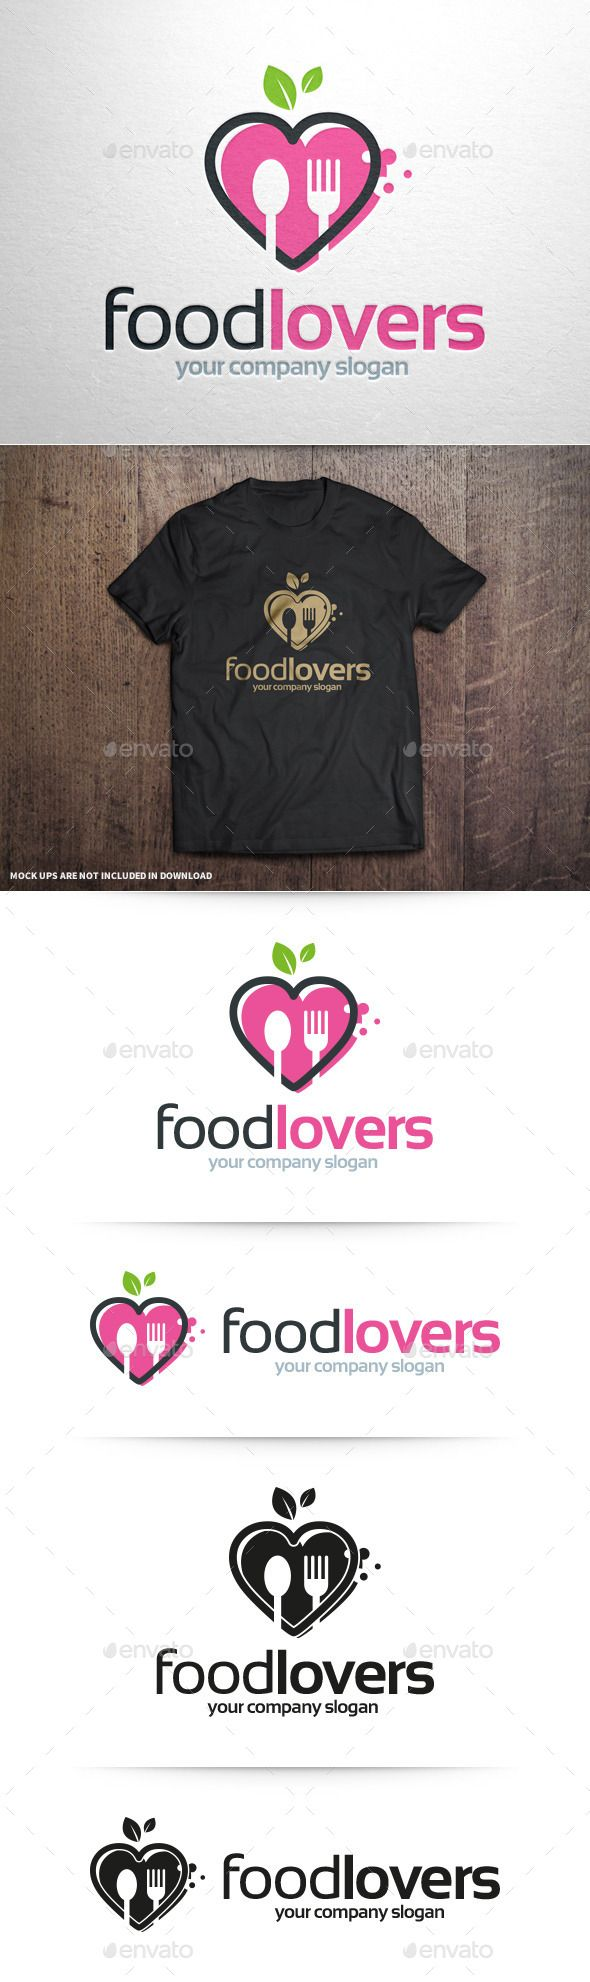 Food Lovers Logo Template (AI Illustrator, Resizable, CS, agency, apple, bio, blog, company, consultant, cook, dating, dinner, eat, eco, food, fork, green, health, heart, life, logo, love, restaurant, review, spoon, template, vector, website, weight)